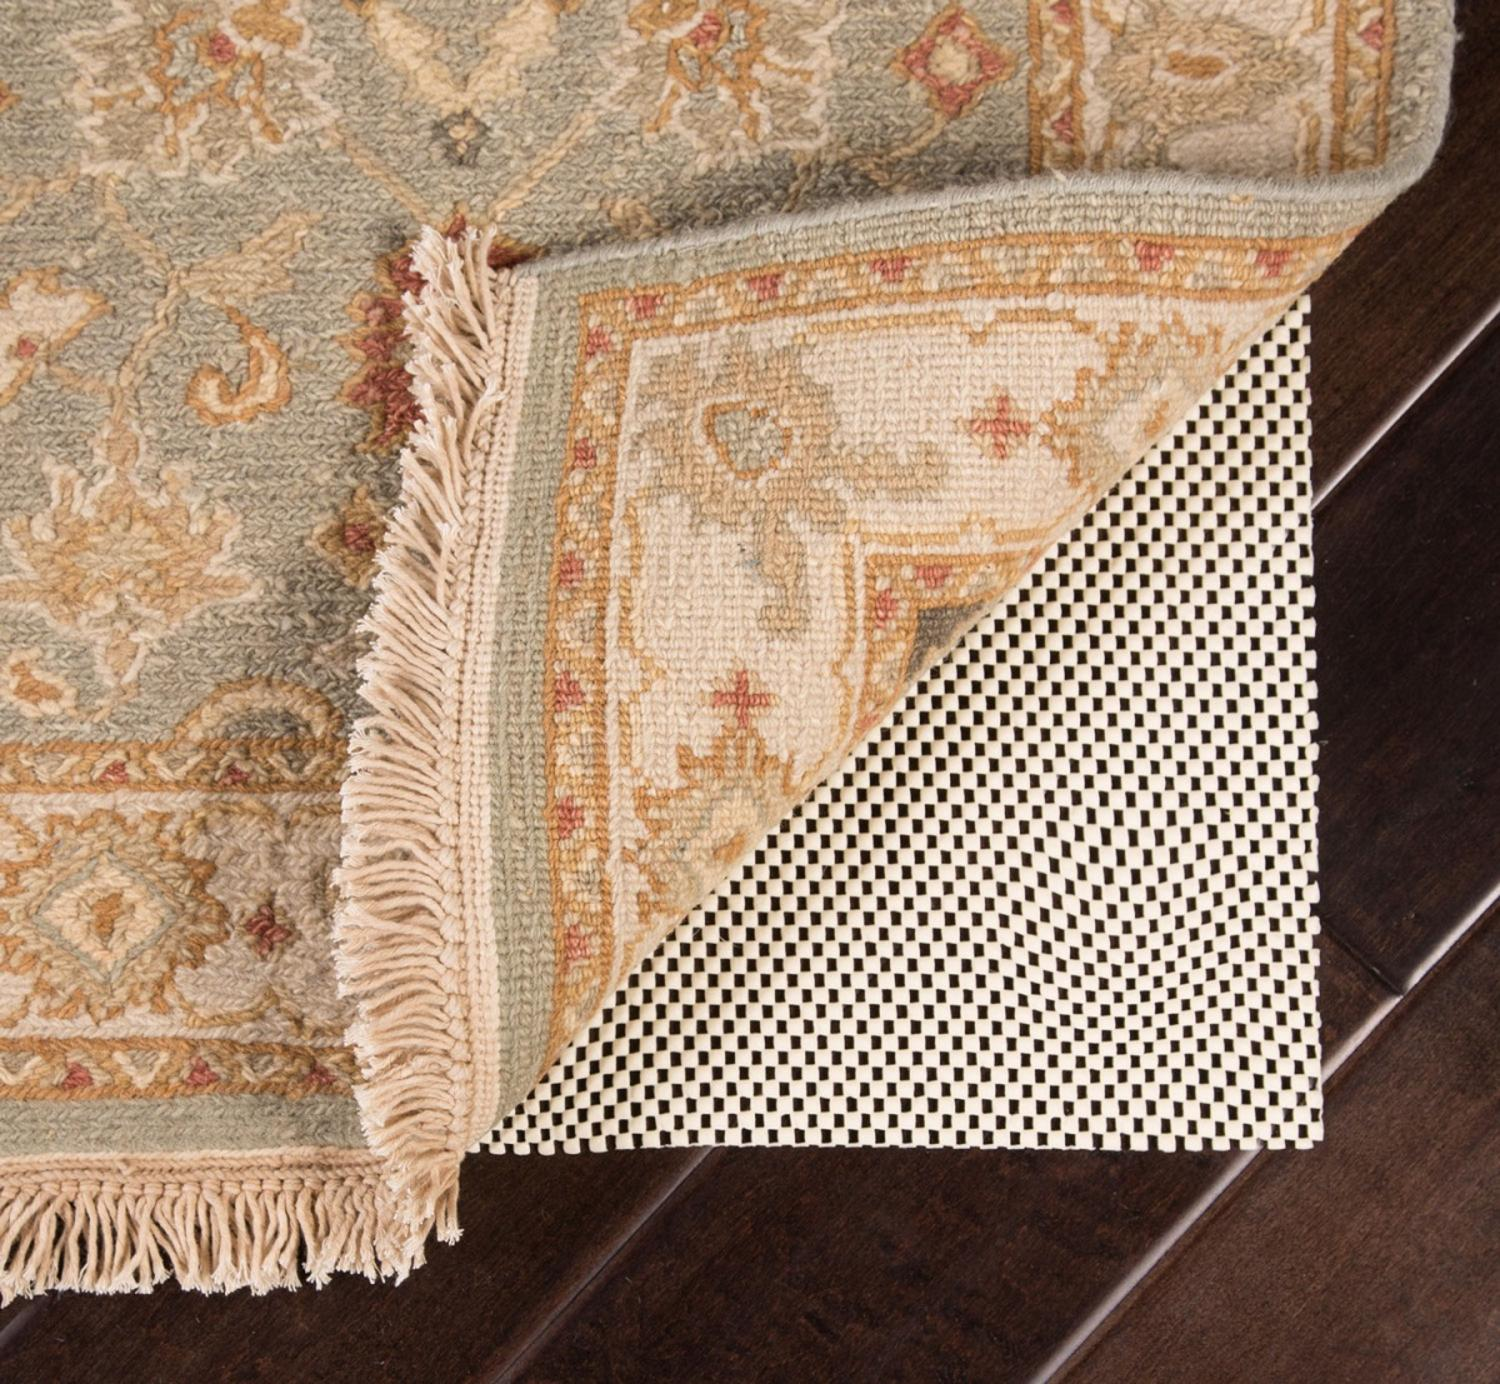 Super Hold Open Weave PVC Pad for a 3' x 5' Area Throw Rug